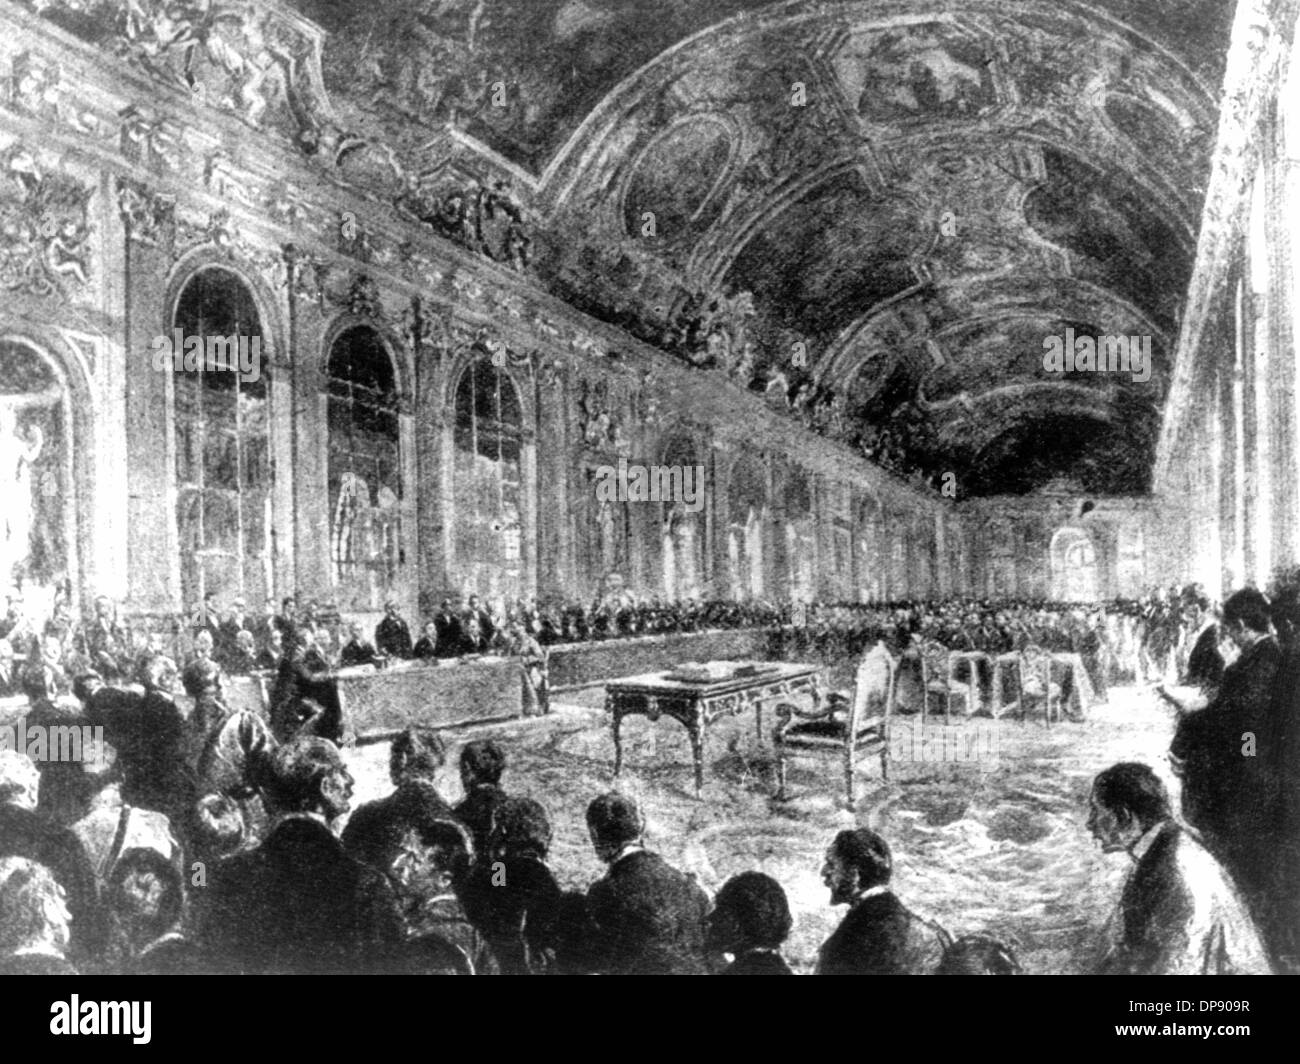 The signing of the peace treaty in the Palace of Versailles: Opening of the session by French minister president Georges Benjamin Clemenceau (drawing by George Scott).   The Treaty of Versailles was the most important of the treaties of Paris that ended World War I in 1919/1920. The Treaty of Versailles was signed in the Palace of Versailles on the 28th of June in 1919 between Germany and 27 allied and associated powers. It became law on the 20th of January in 1920. Without German participation, the peace treaty was negotiated about between Wilson, Lloyd George, Clemenceau and Orlando (the 'Bi - Stock Image